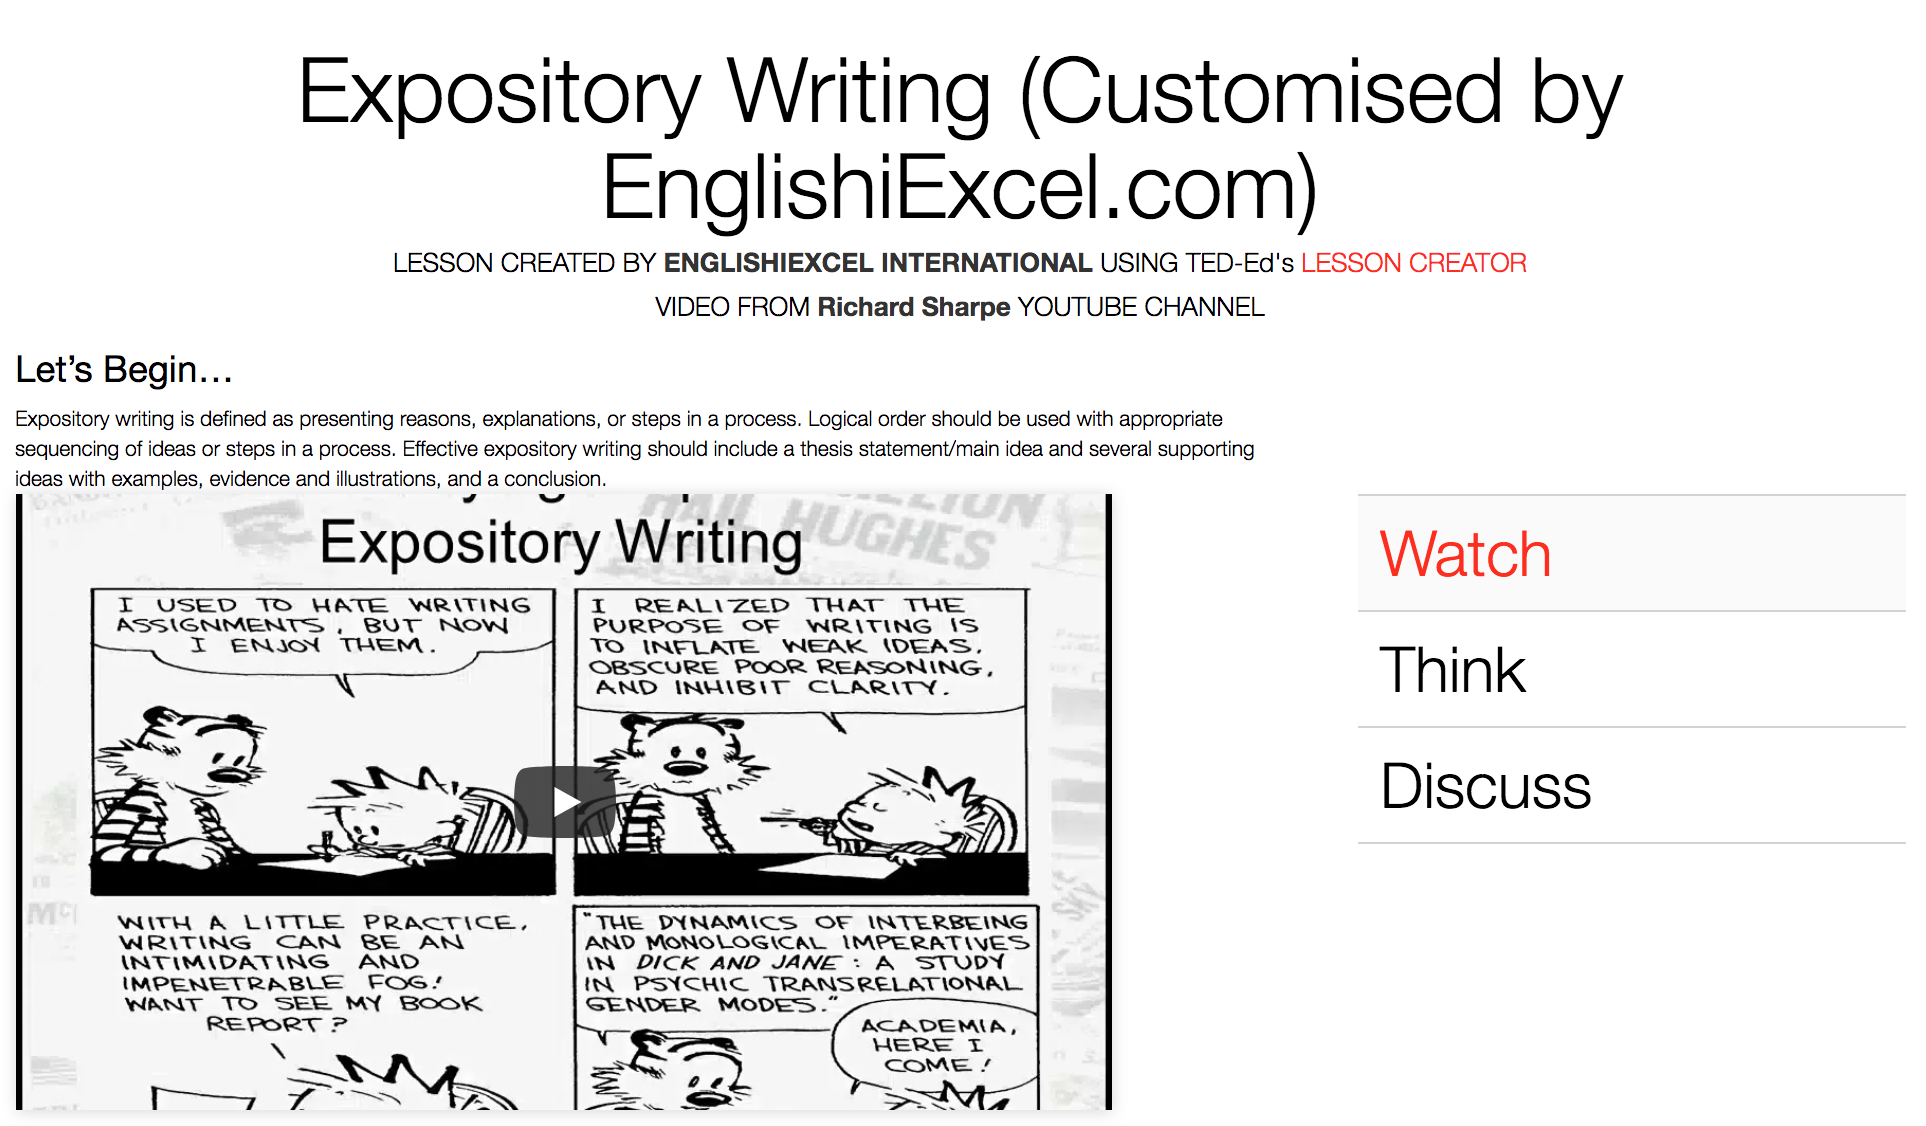 Unit 2: Expository Writing - https://ed.ted.com/on/wgRNDtl1